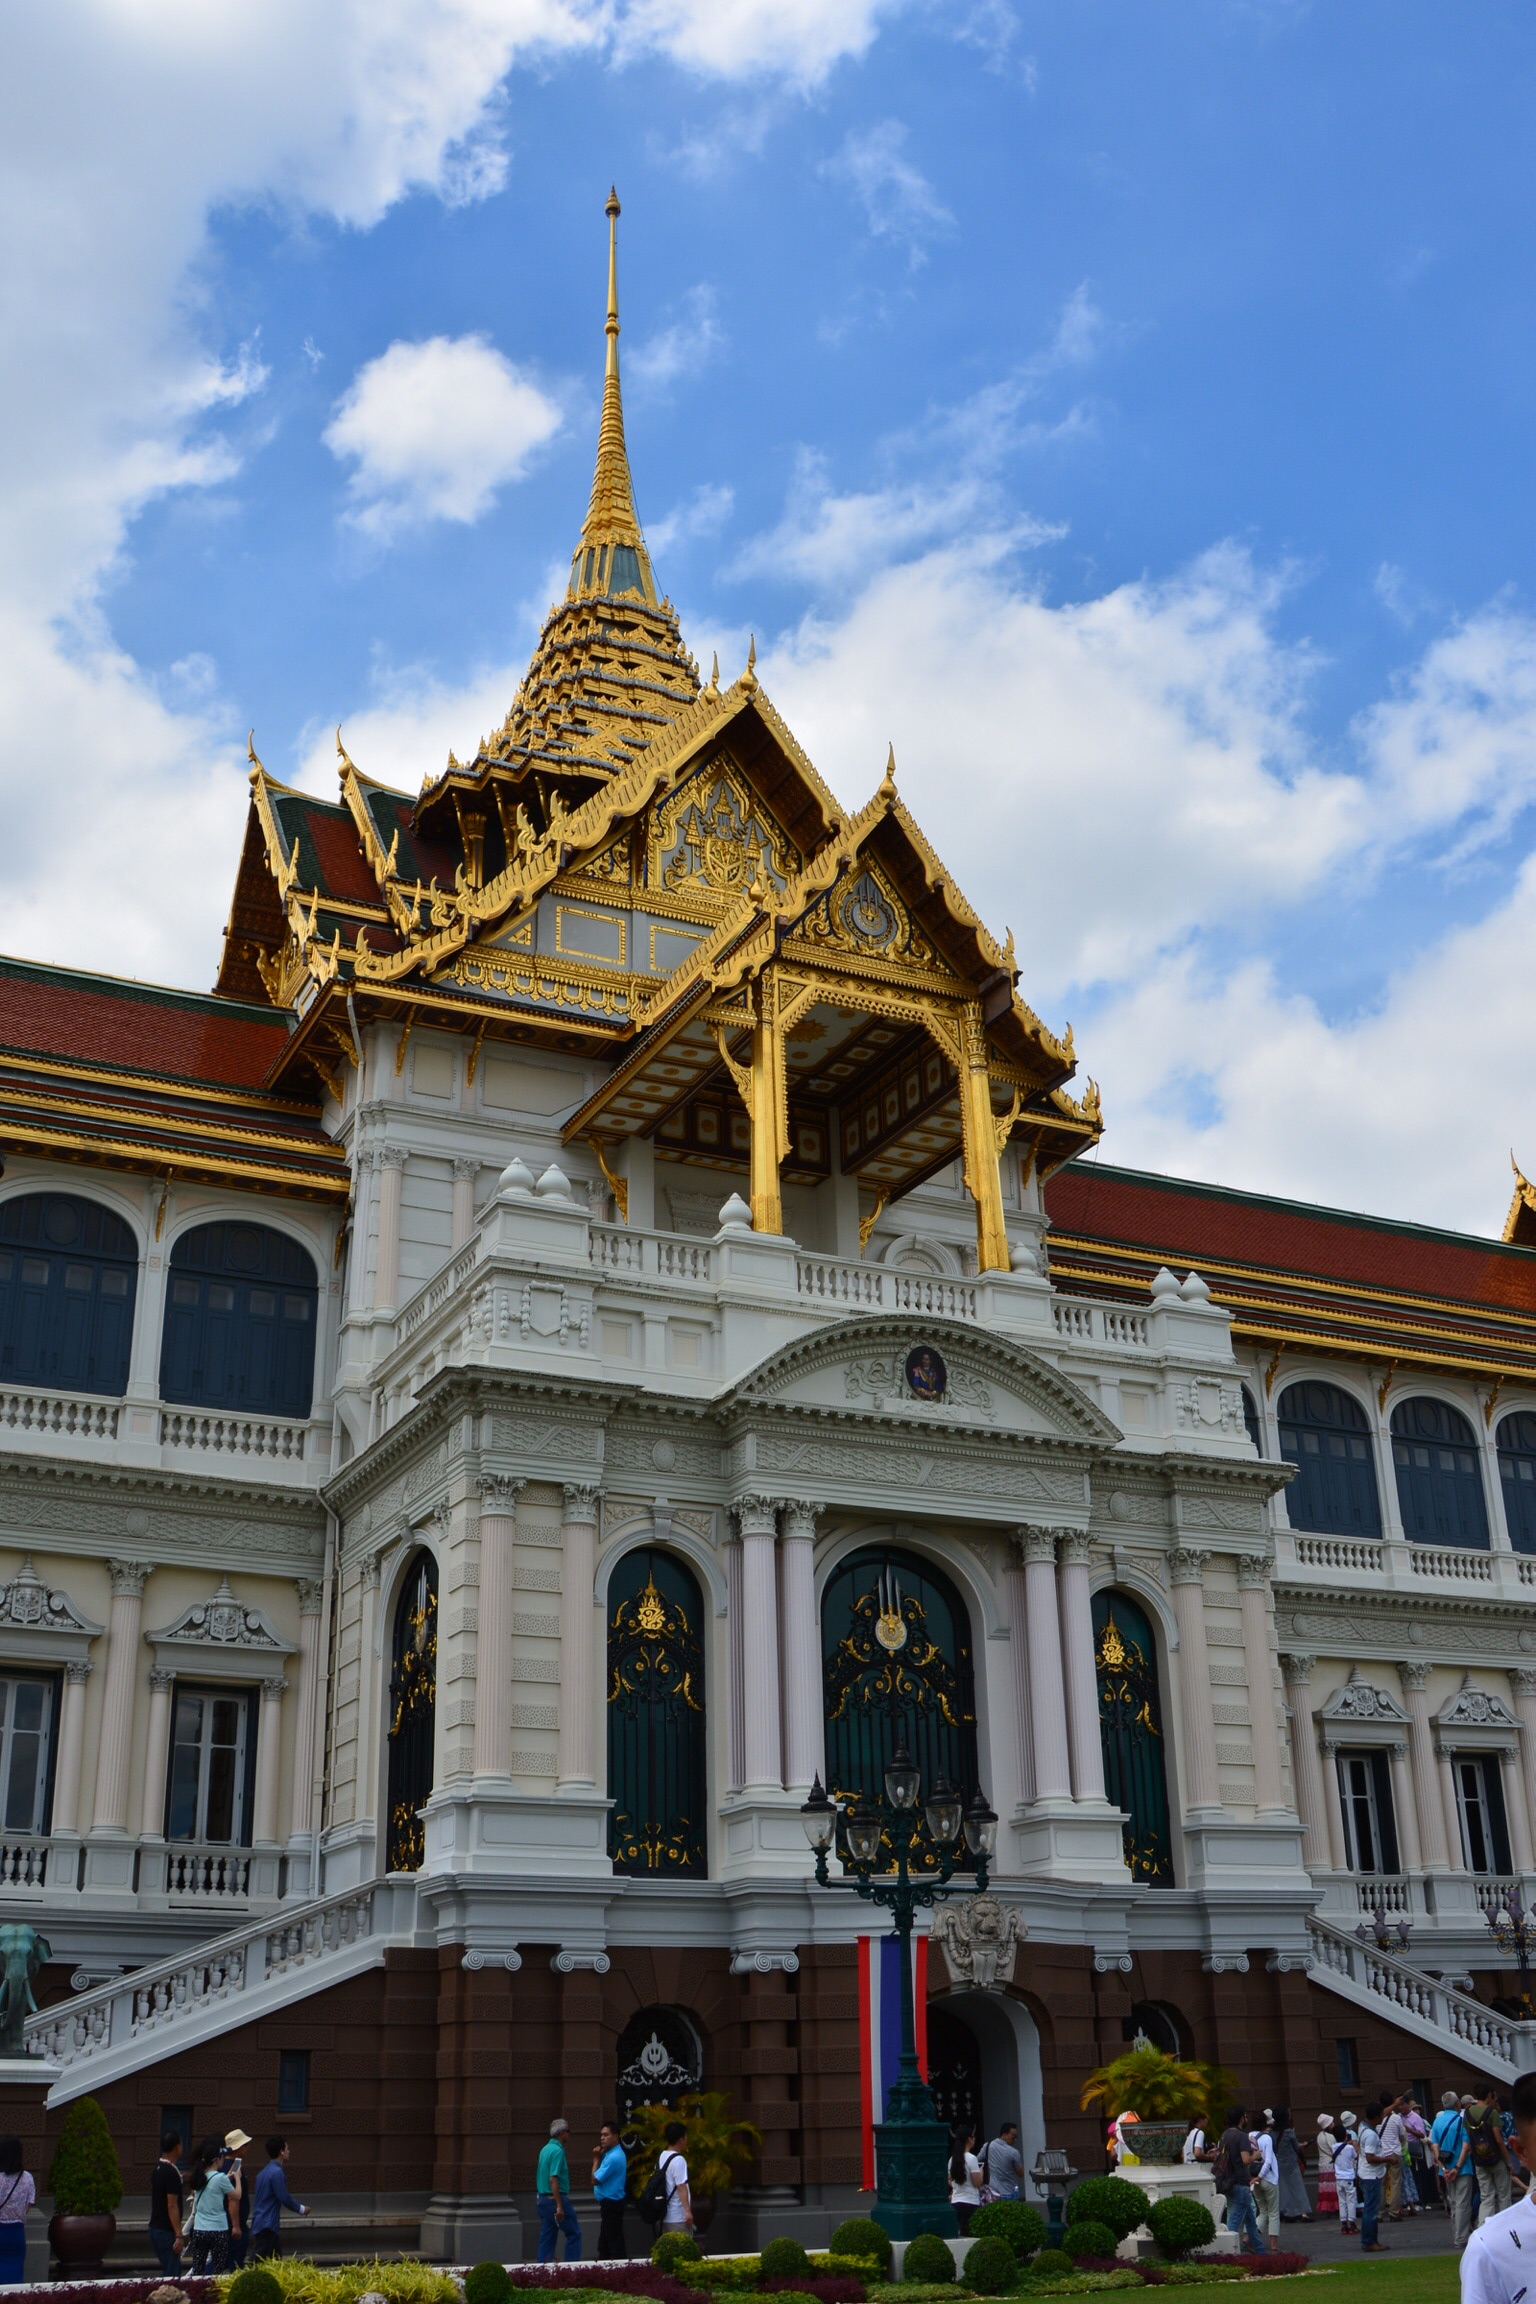 Mix of European and Asian styles at the Grand Palace.